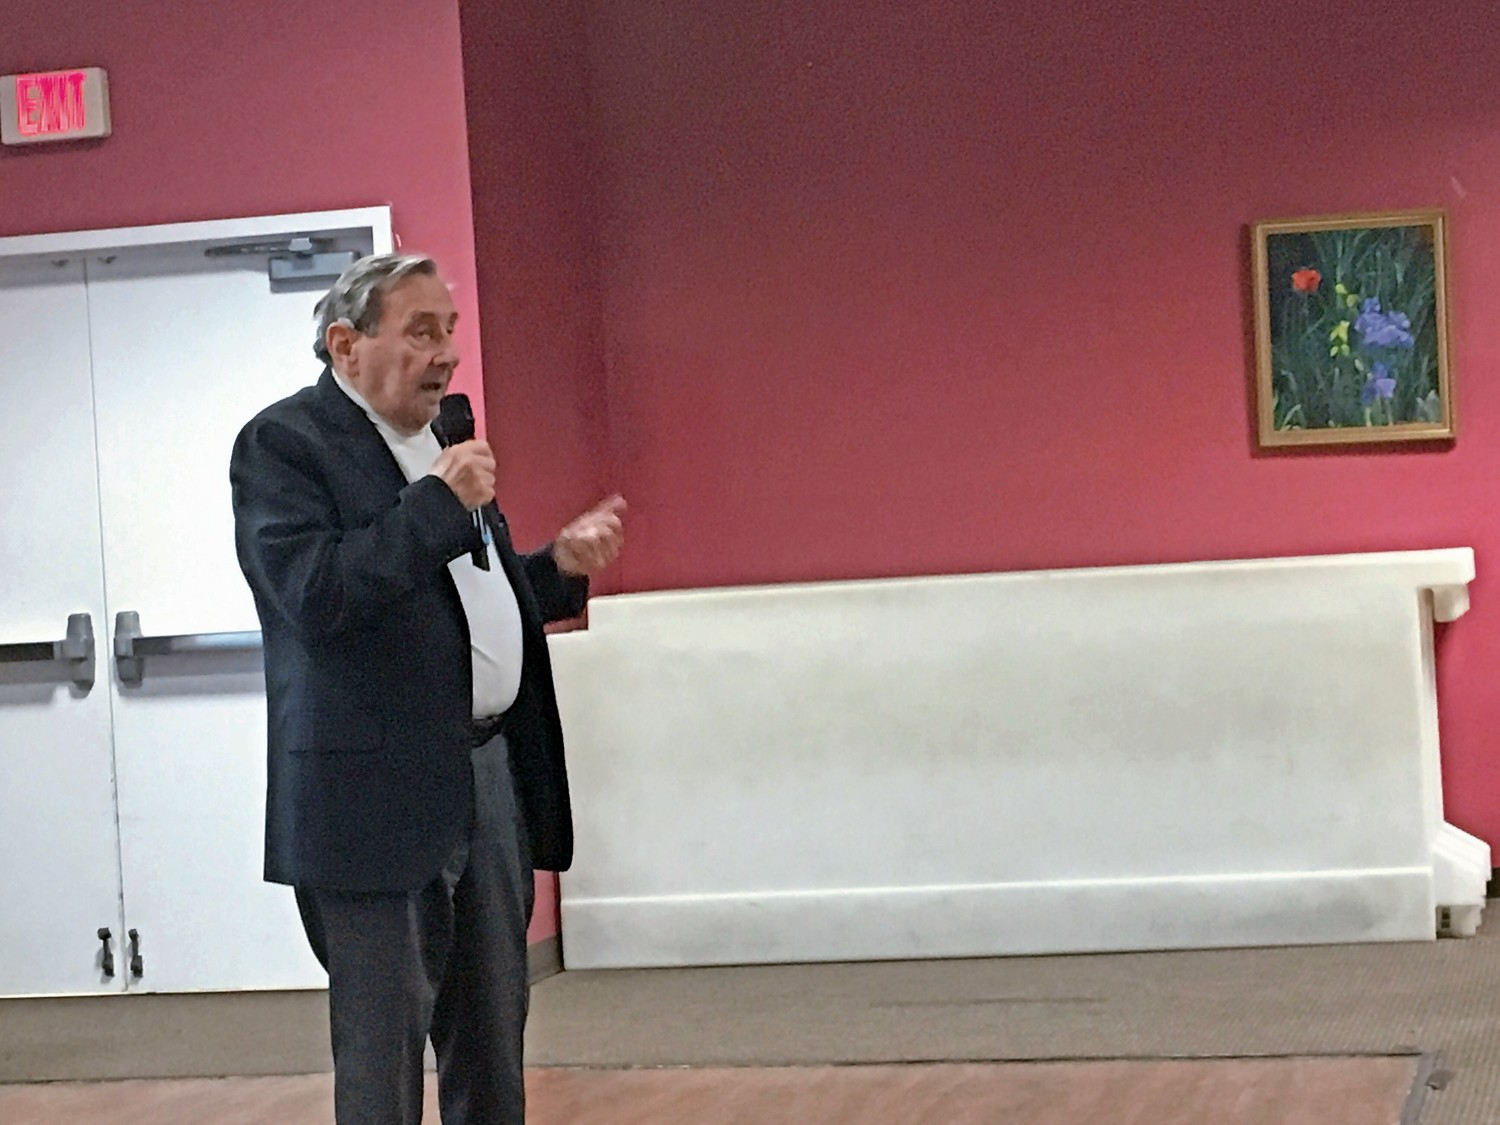 Werner Reich, a 91-year-old Holocaust survivor, shared his story with dozens of residents at the Friedberg Jewish Community Center on Jan. 24.